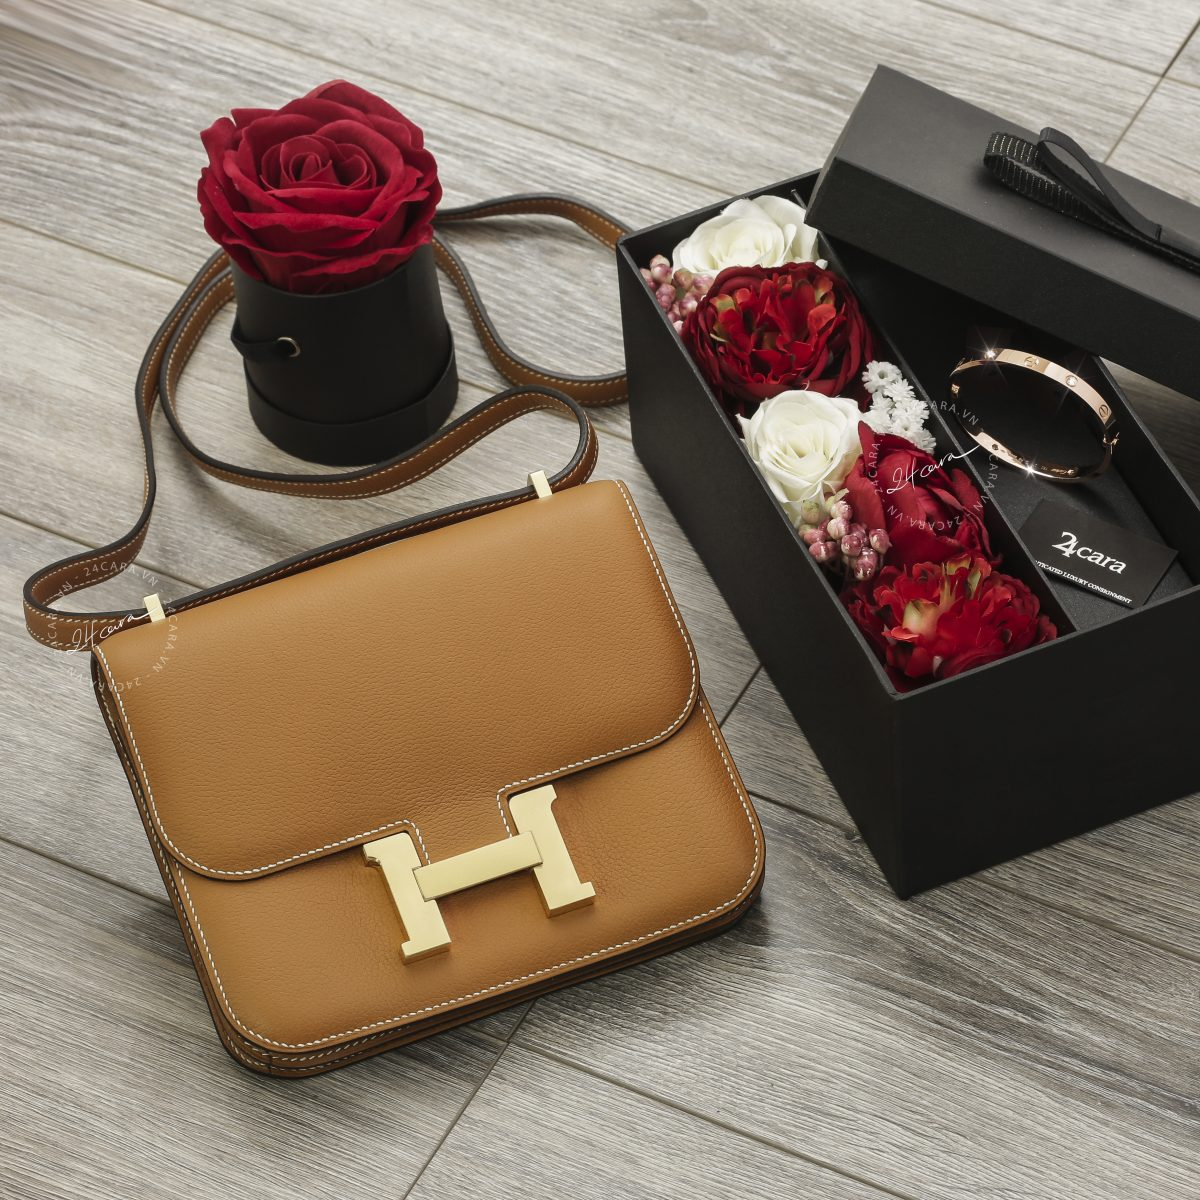 Hermes Constance 19 Gold Togo Leather GHW